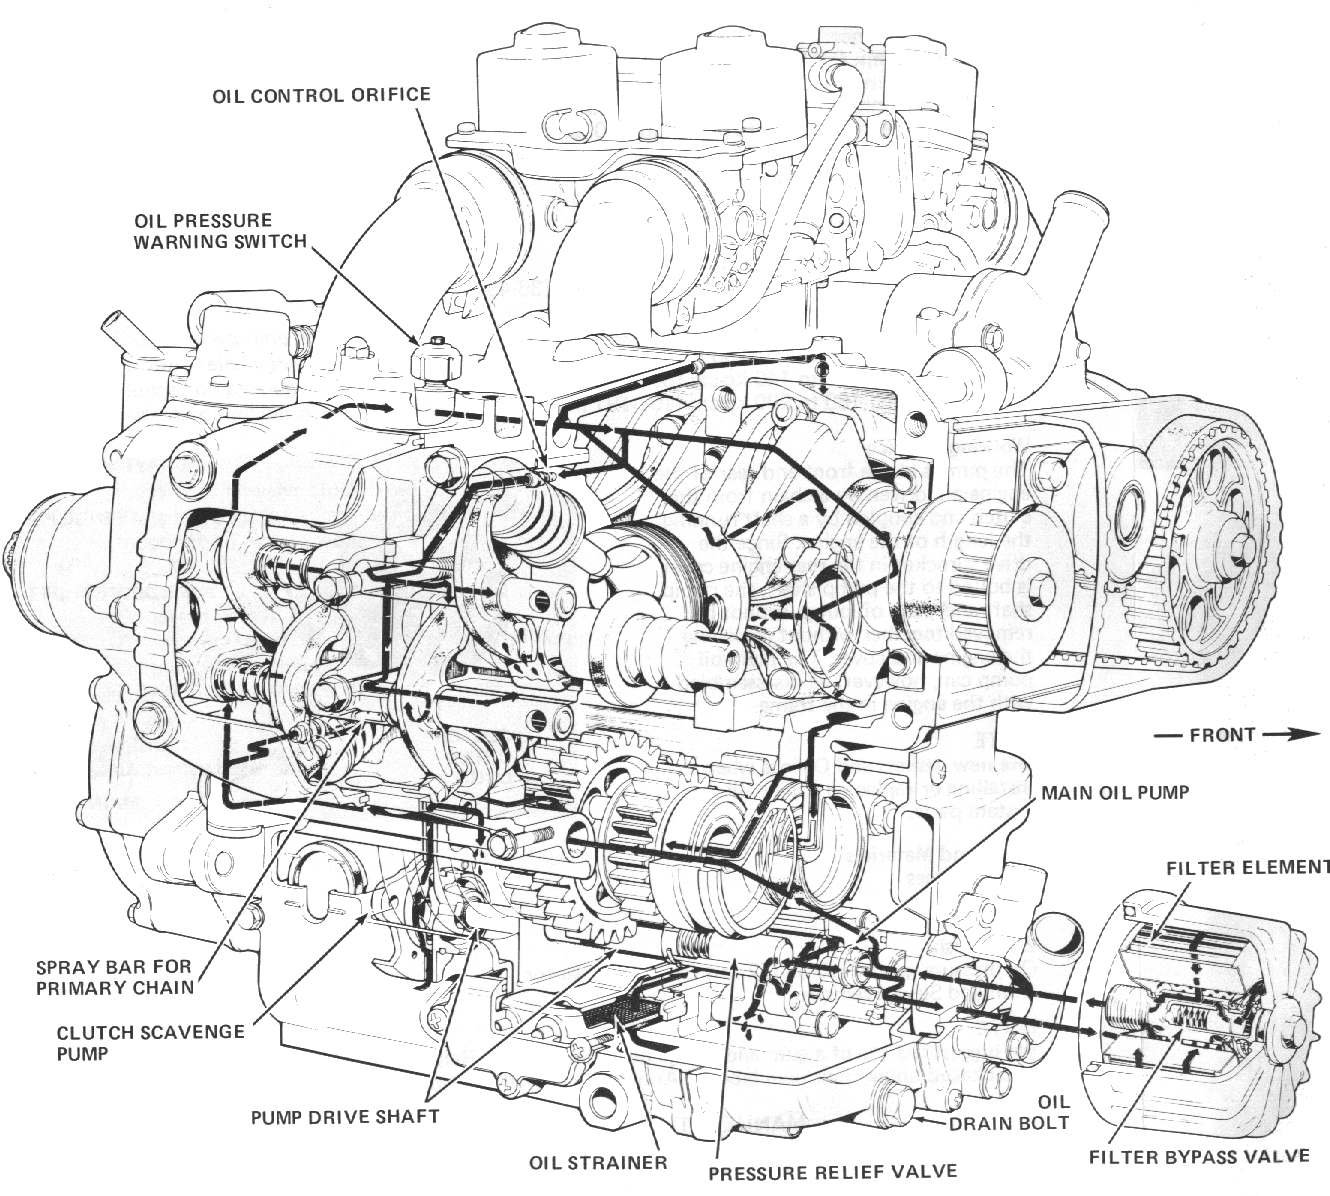 Motorcycle Engine Drawing At Free For Personal Use 8 Cylinder Ohv Diagram 1330x1196 Dans Four Stroke Oil Flow